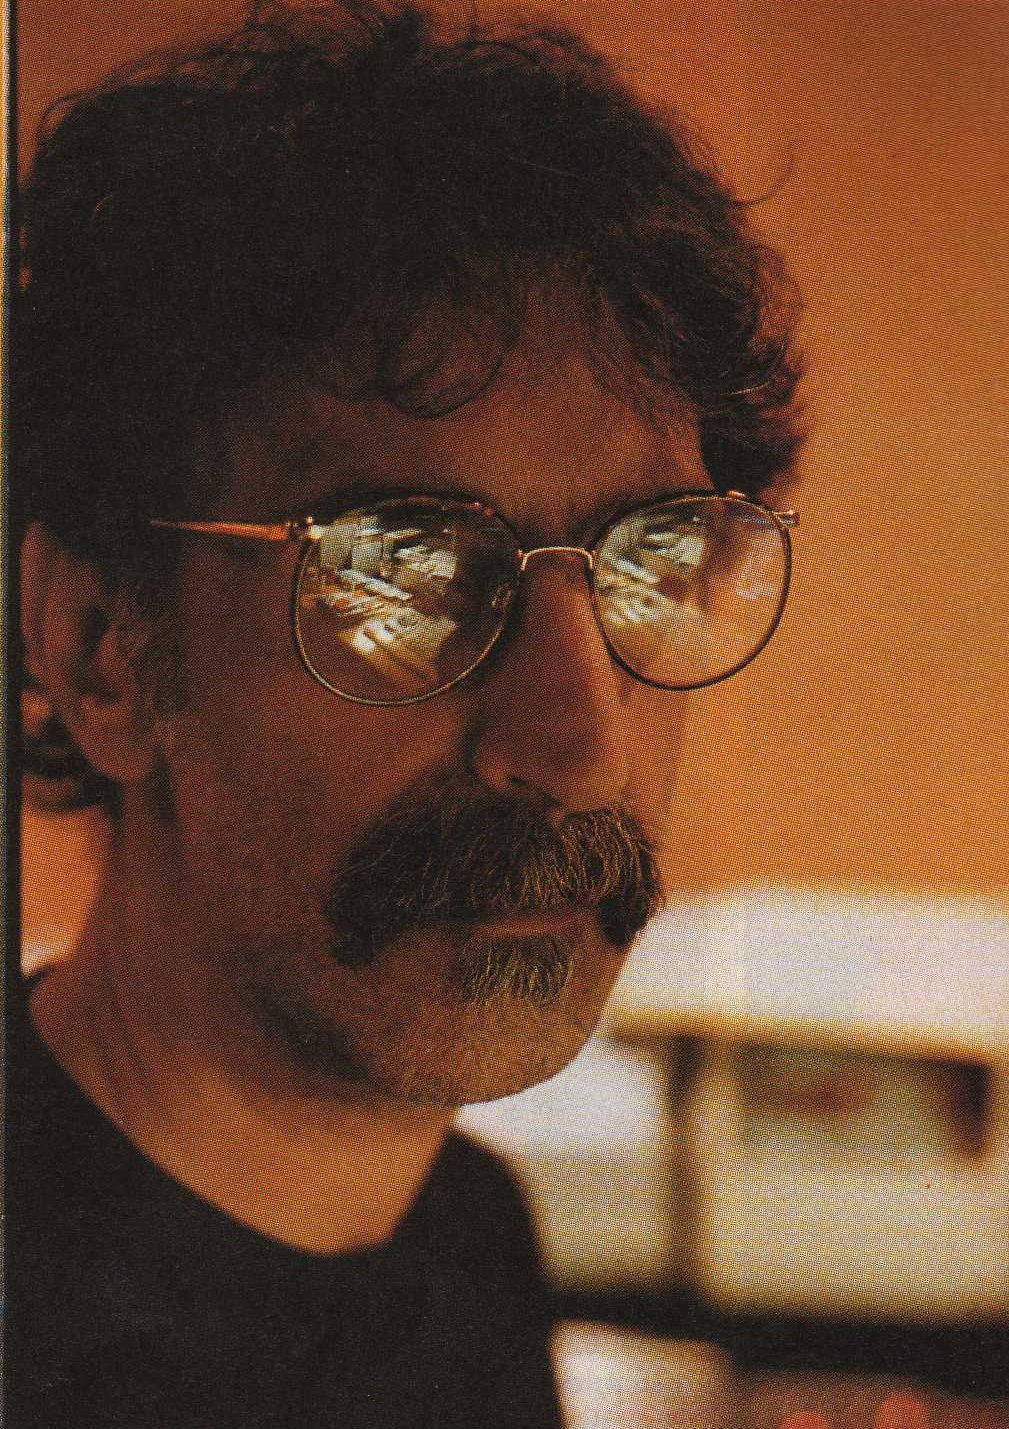 frank zappa in hungary 1991 june 28 30 the zappa mustache youtube. Black Bedroom Furniture Sets. Home Design Ideas